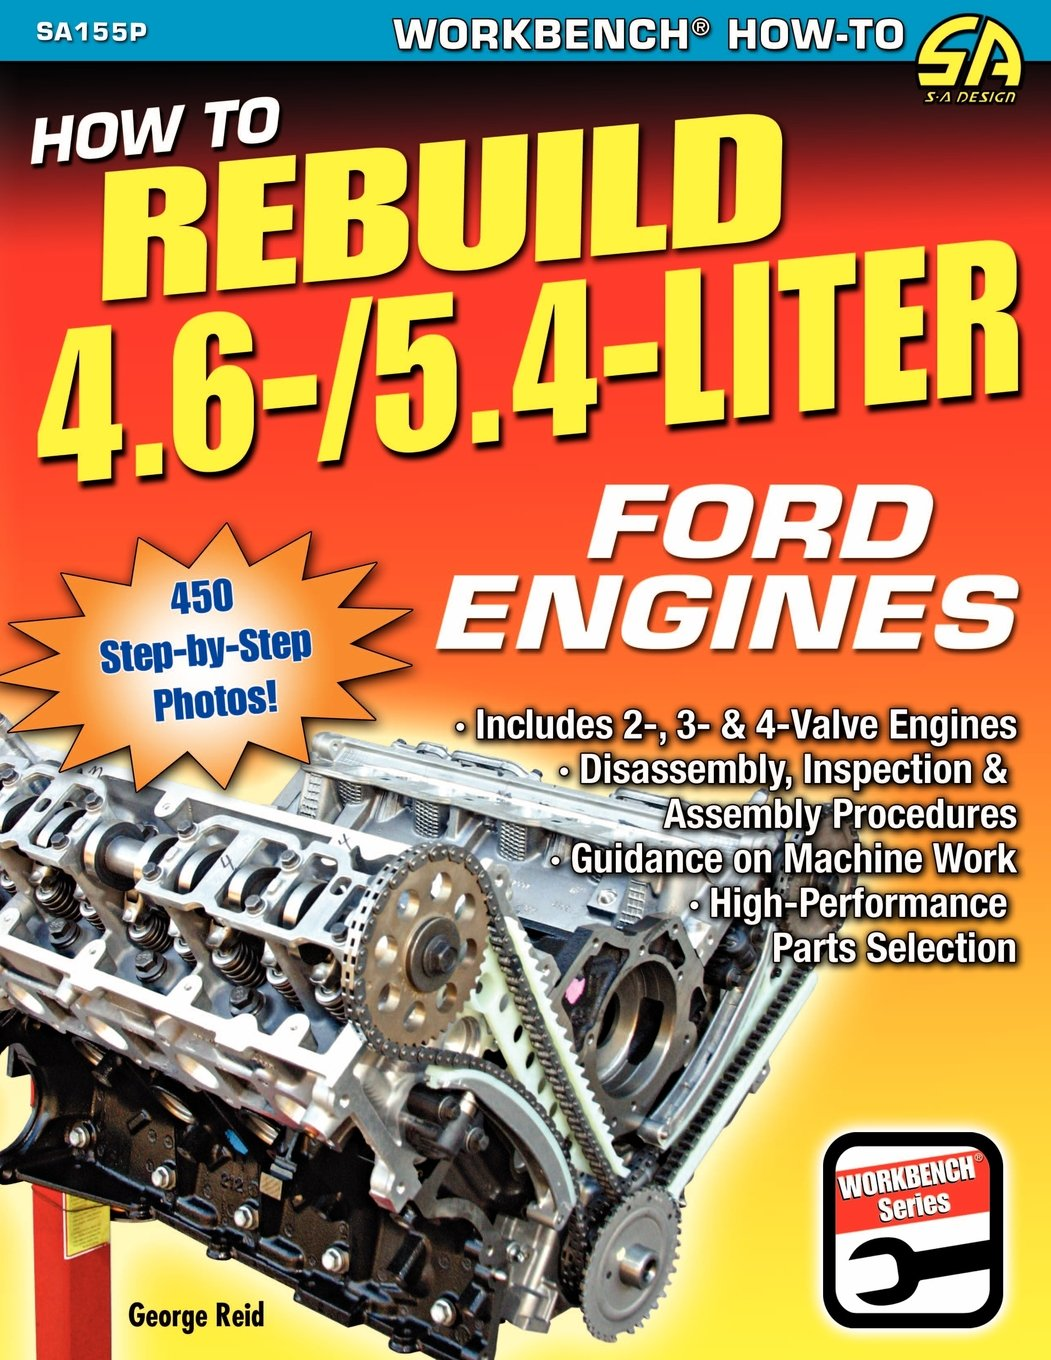 Ford 281 4 6 Engine Diagram Wiring Data Powerstroke How To Rebuild 5 Liter Engines George Reid Rh Amazon Com 46 32v 64